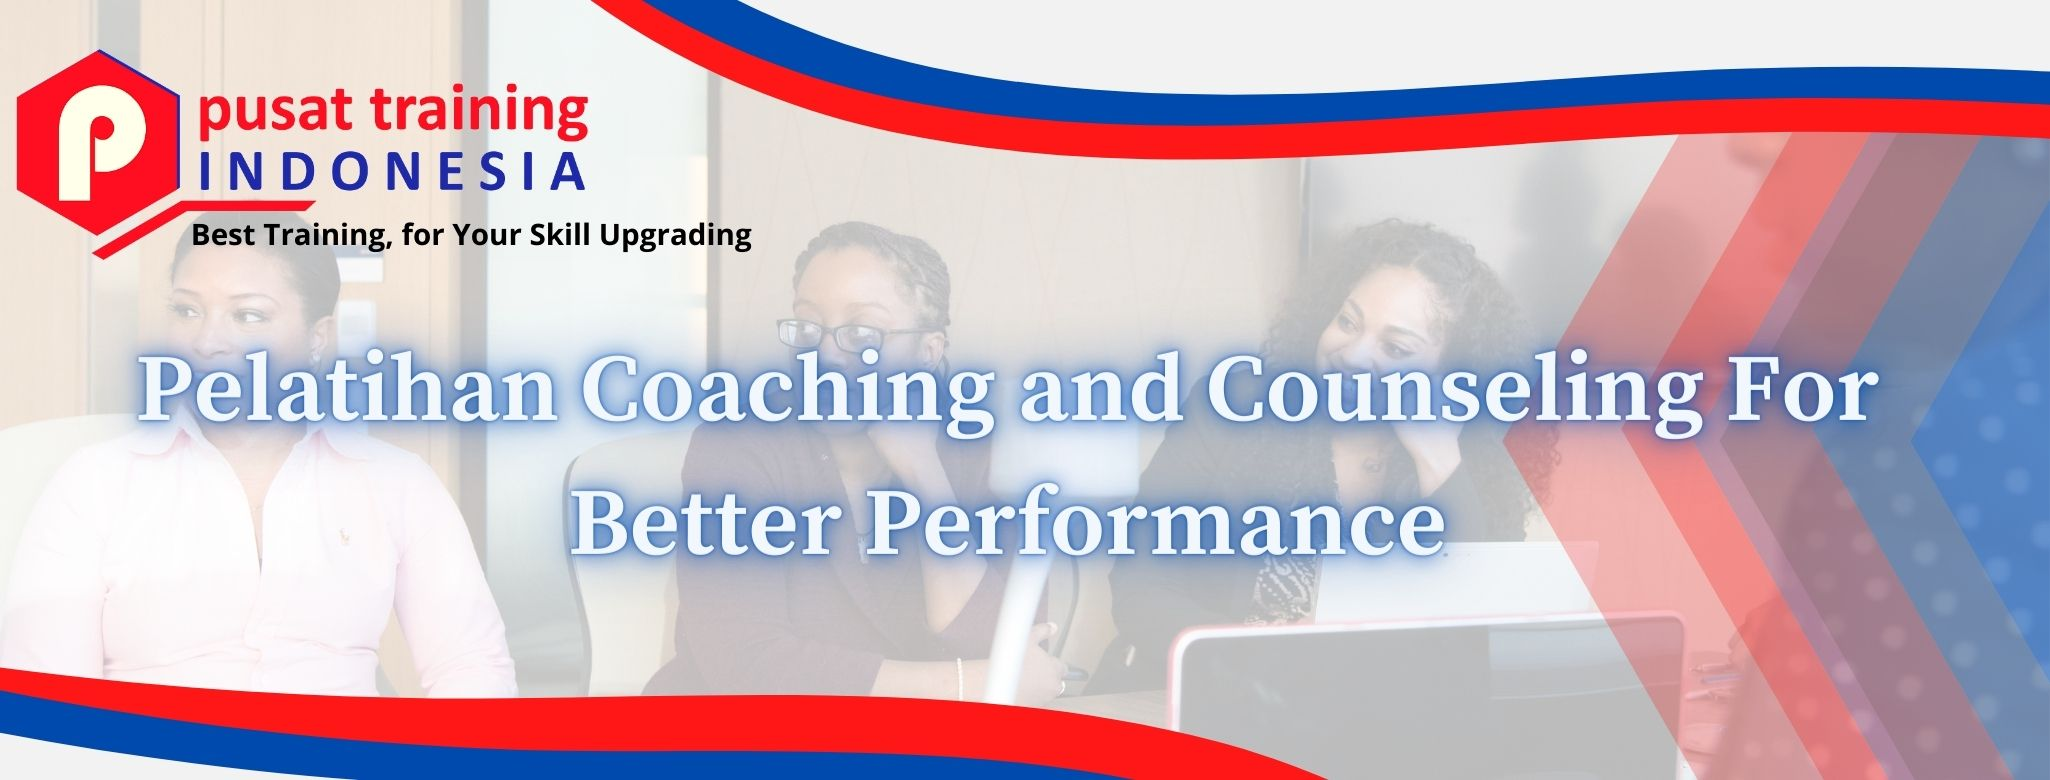 Pelatihan-Coaching-and-Counseling-For-Better-Performance